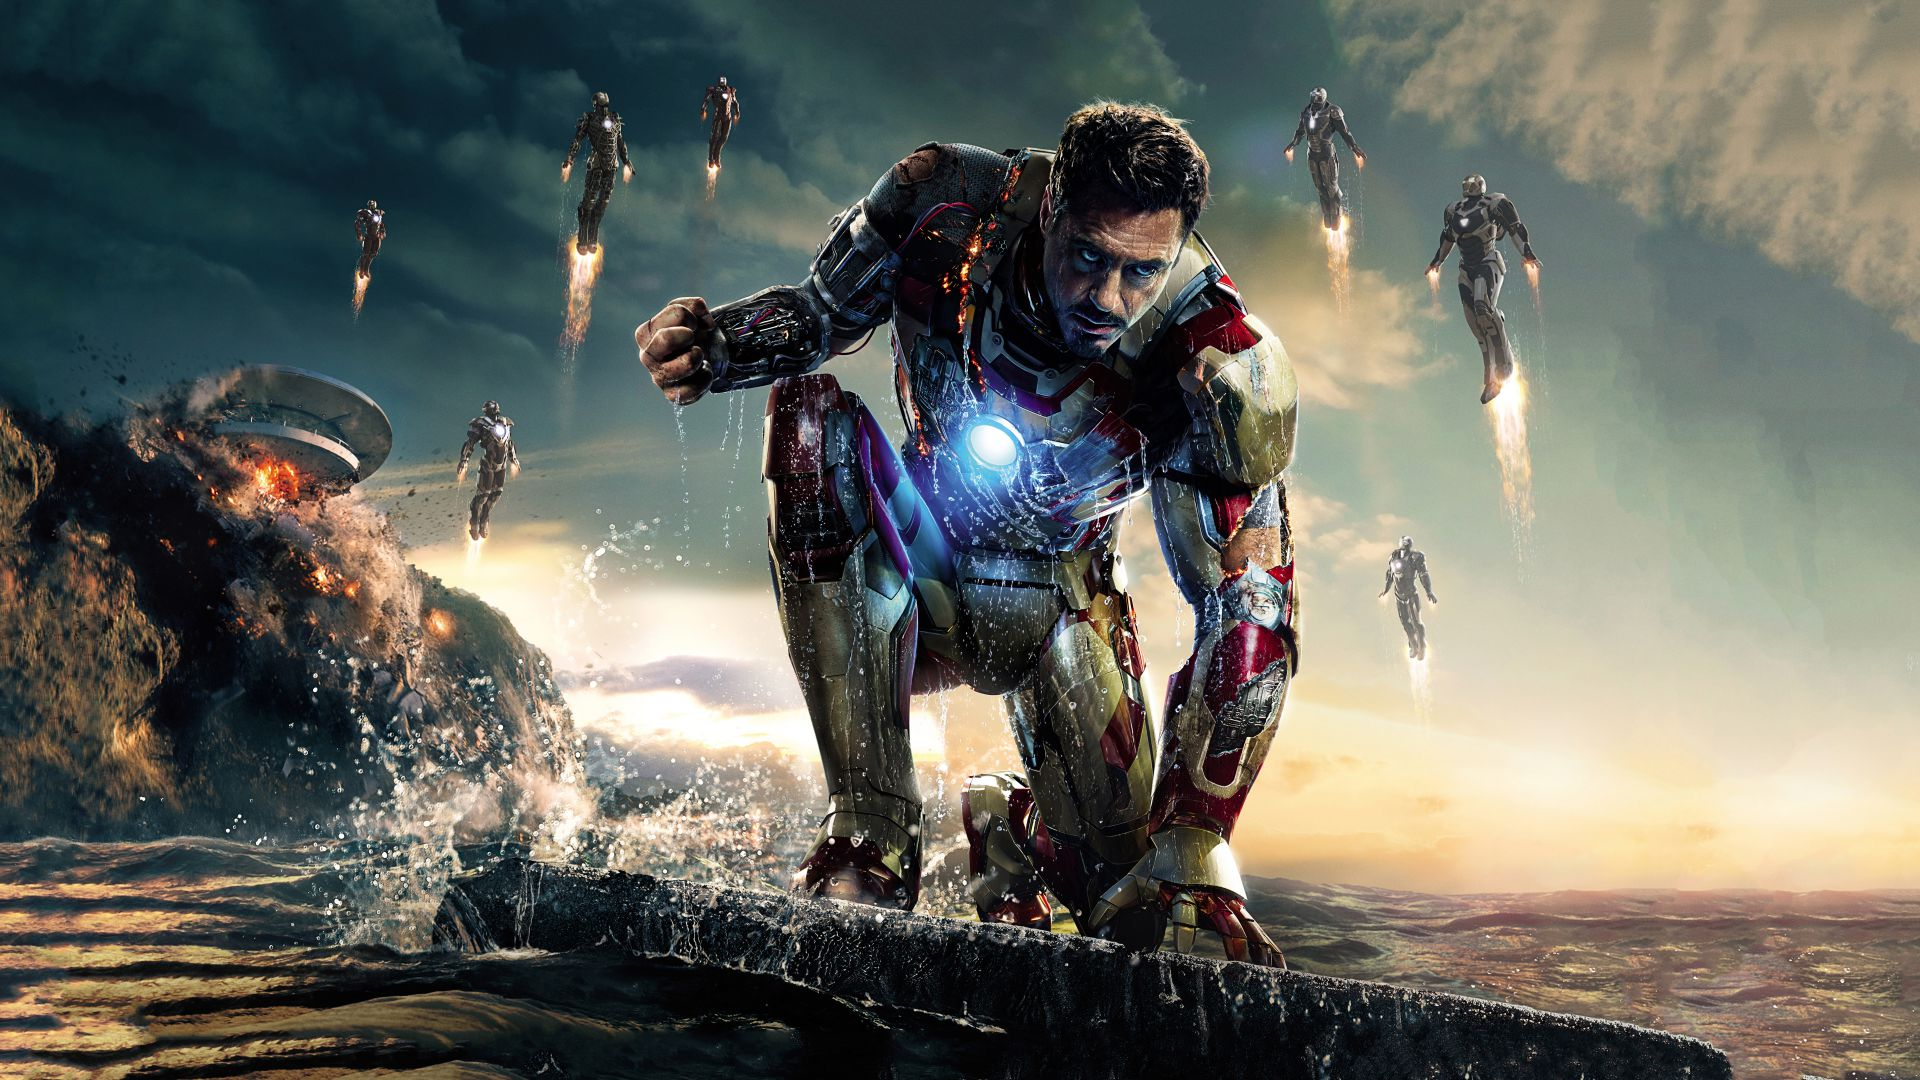 Avengers: Age of Ultron, Avengers 2, Robert Downey Jr., Iron Man, Tony Stark, Poster (horizontal)